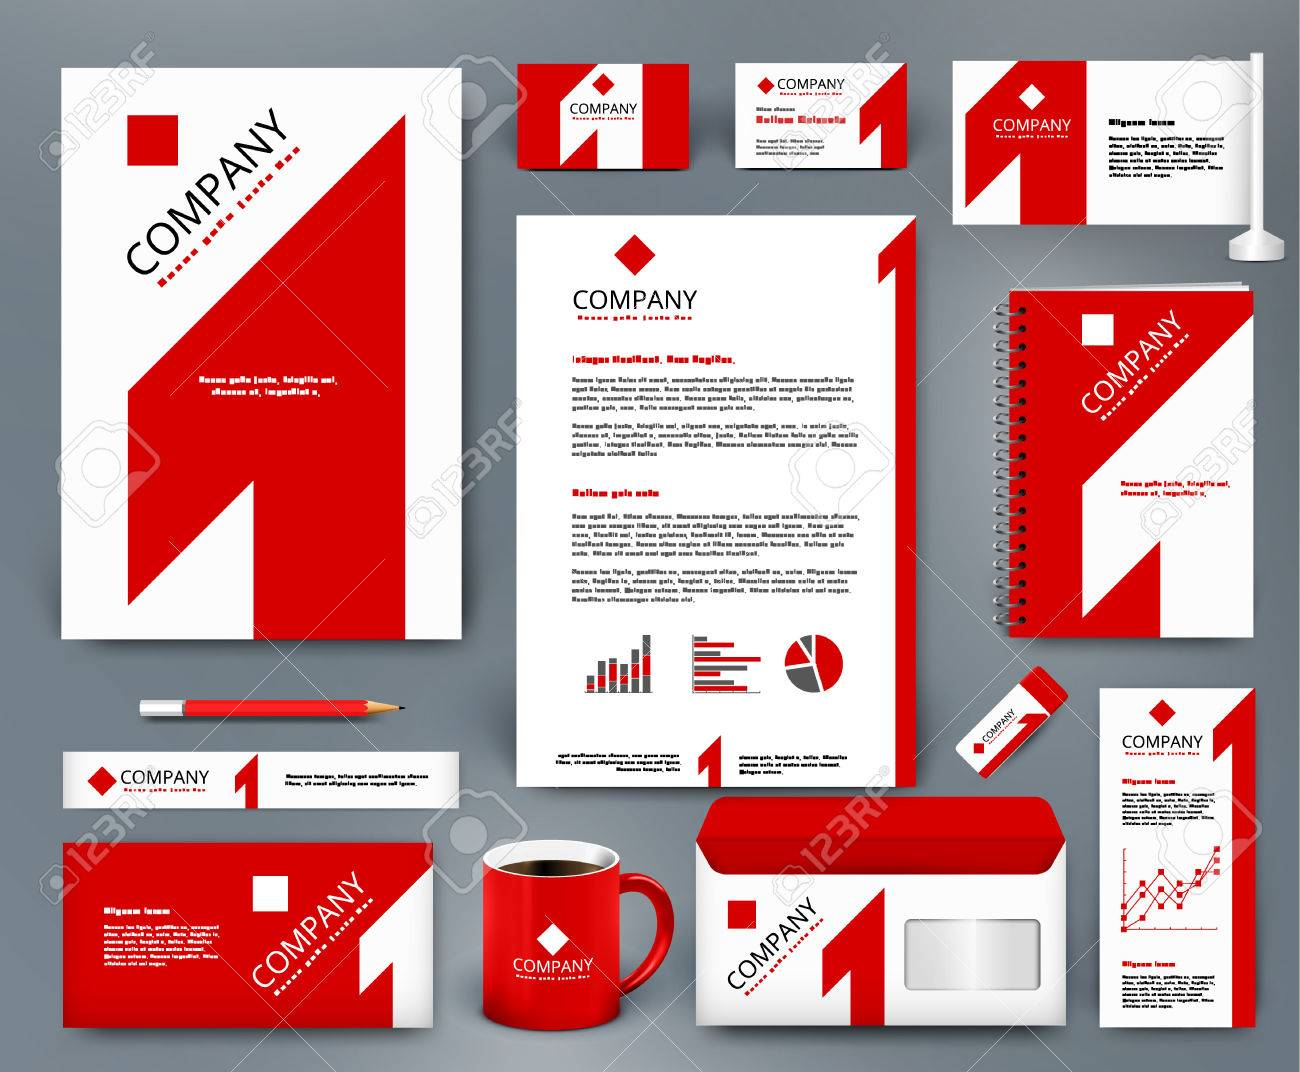 Professional universal branding design kit with red number one on white backdrop. Corporate identity template. Business stationery mockup. Editable vector illustration: folder, mug, etc. - 56861094